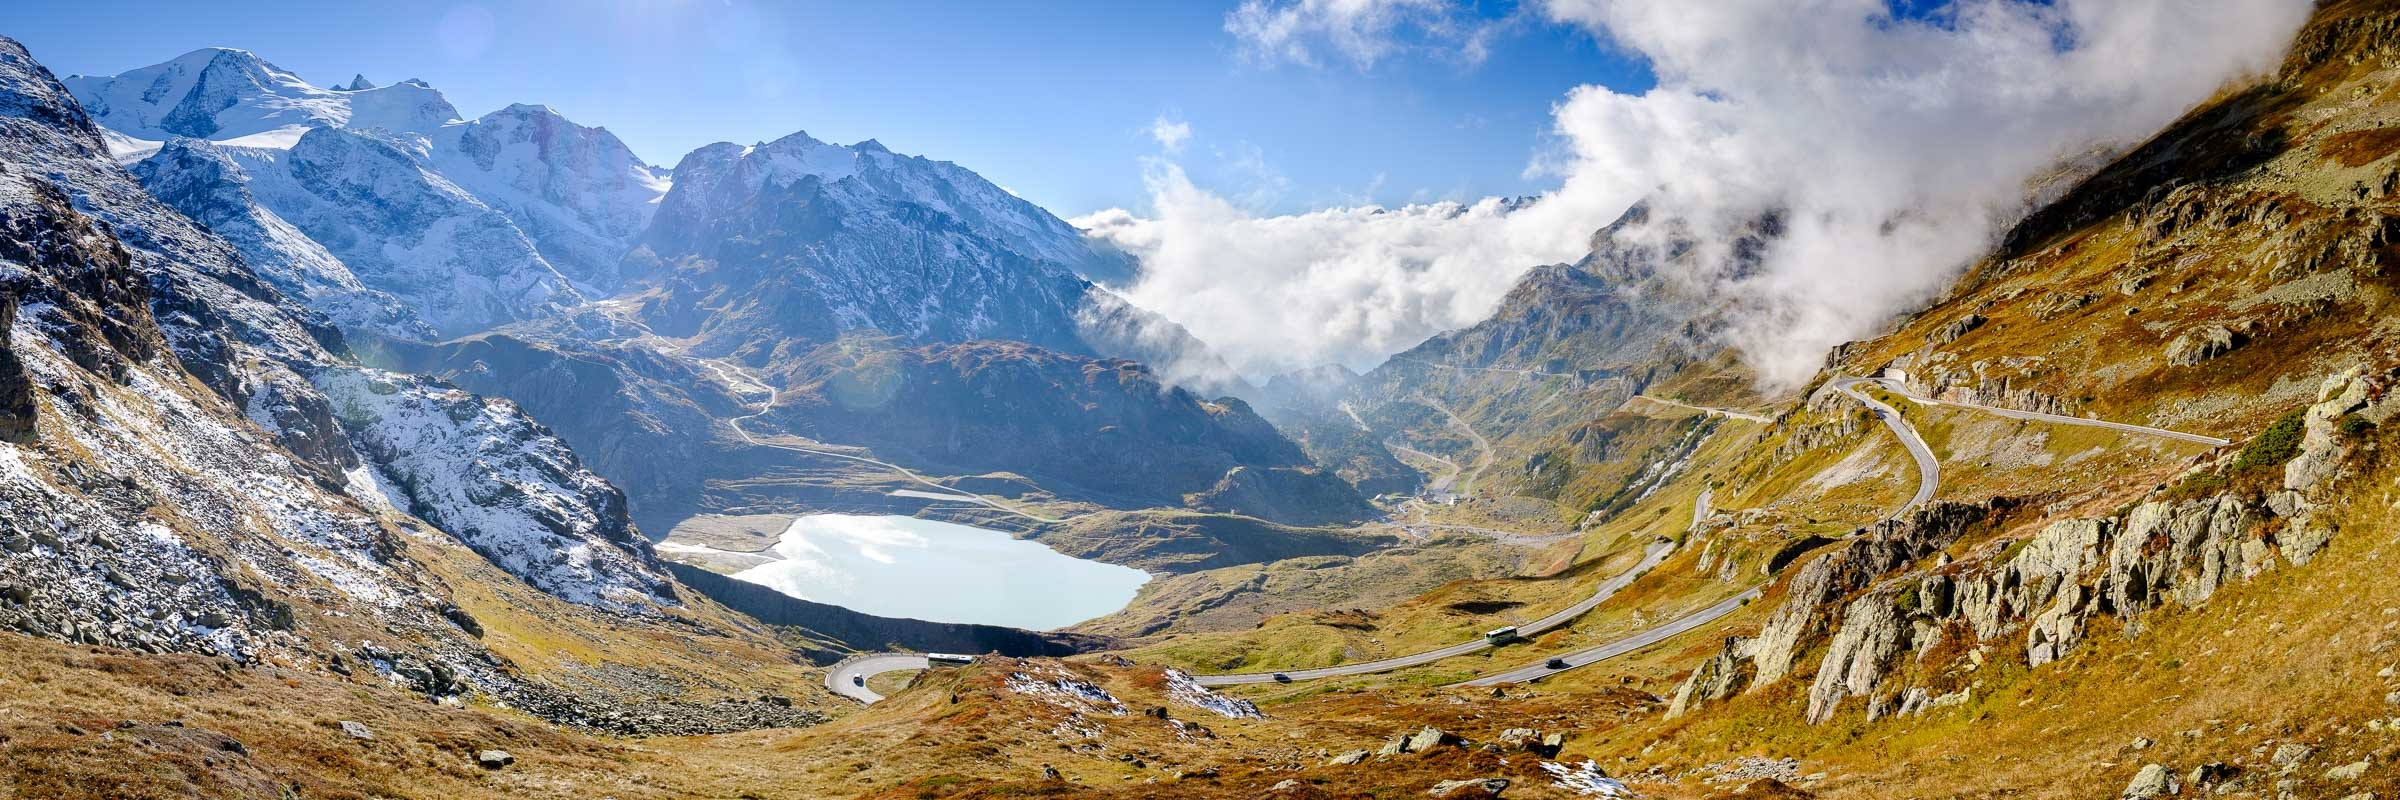 Susten Pass, Switzerland